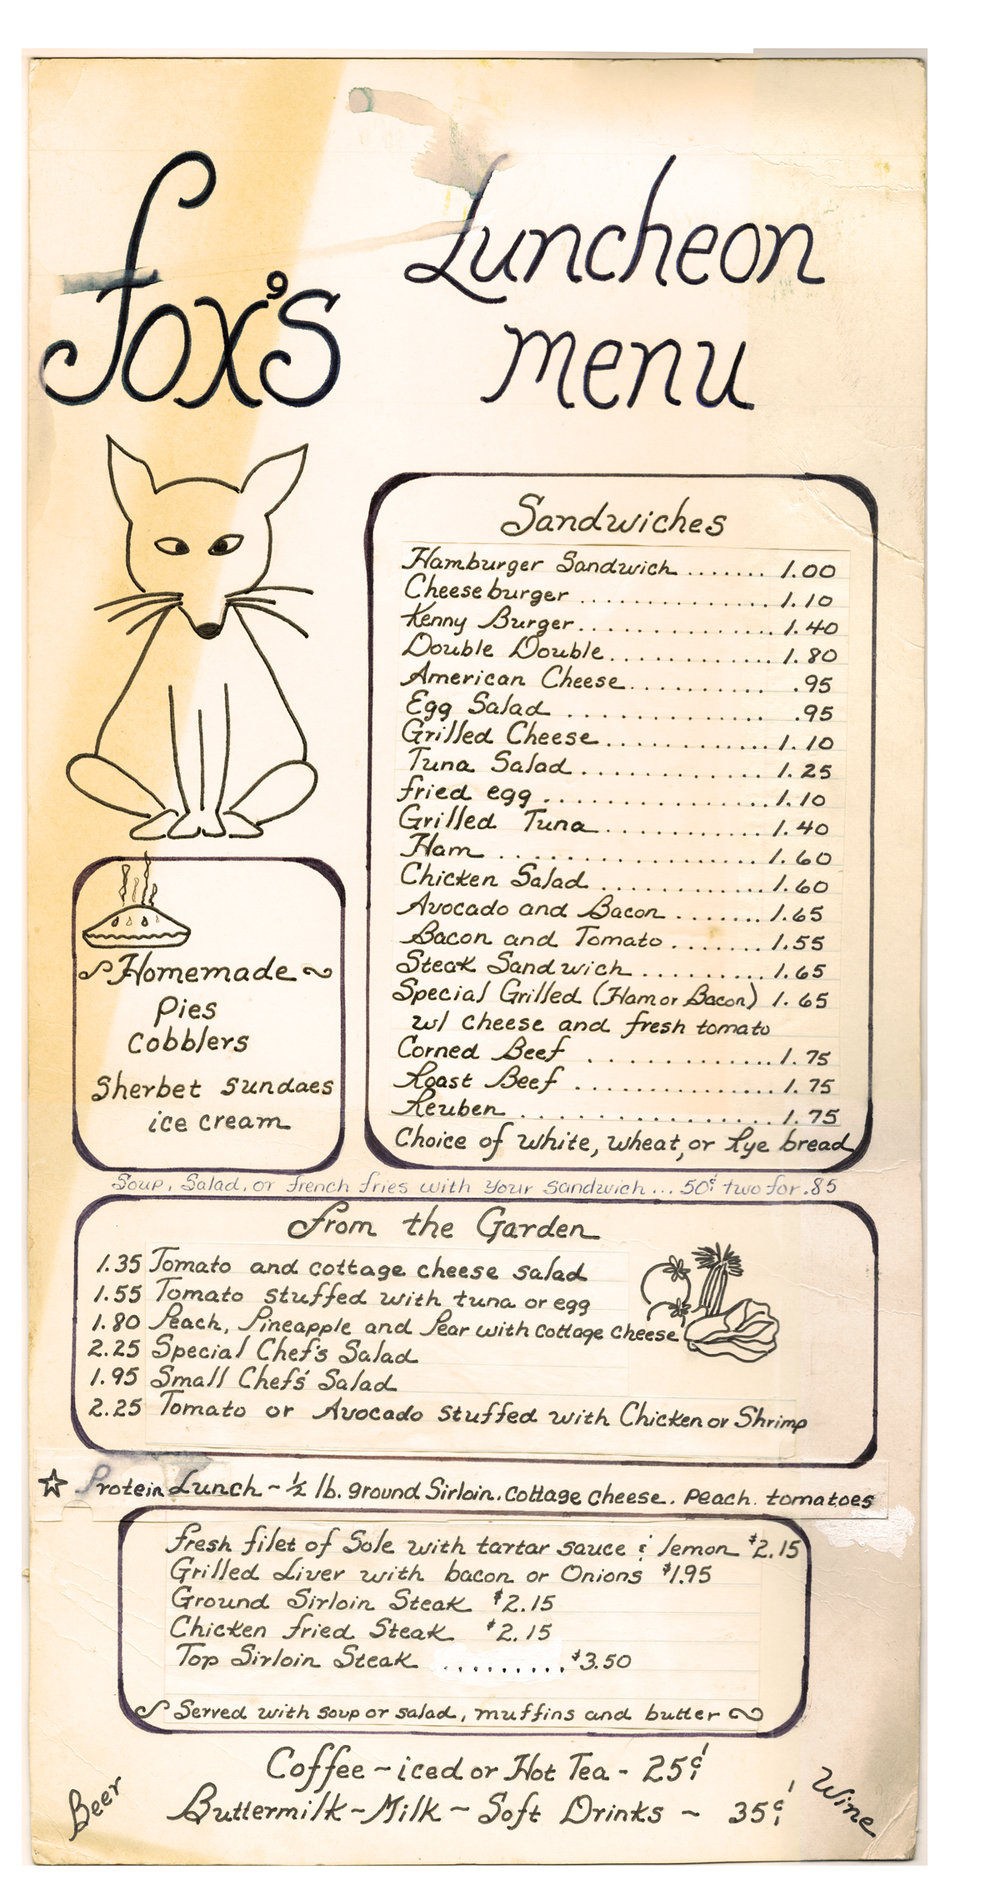 Original-Fox-Lunch-Menu-Fix.jpg